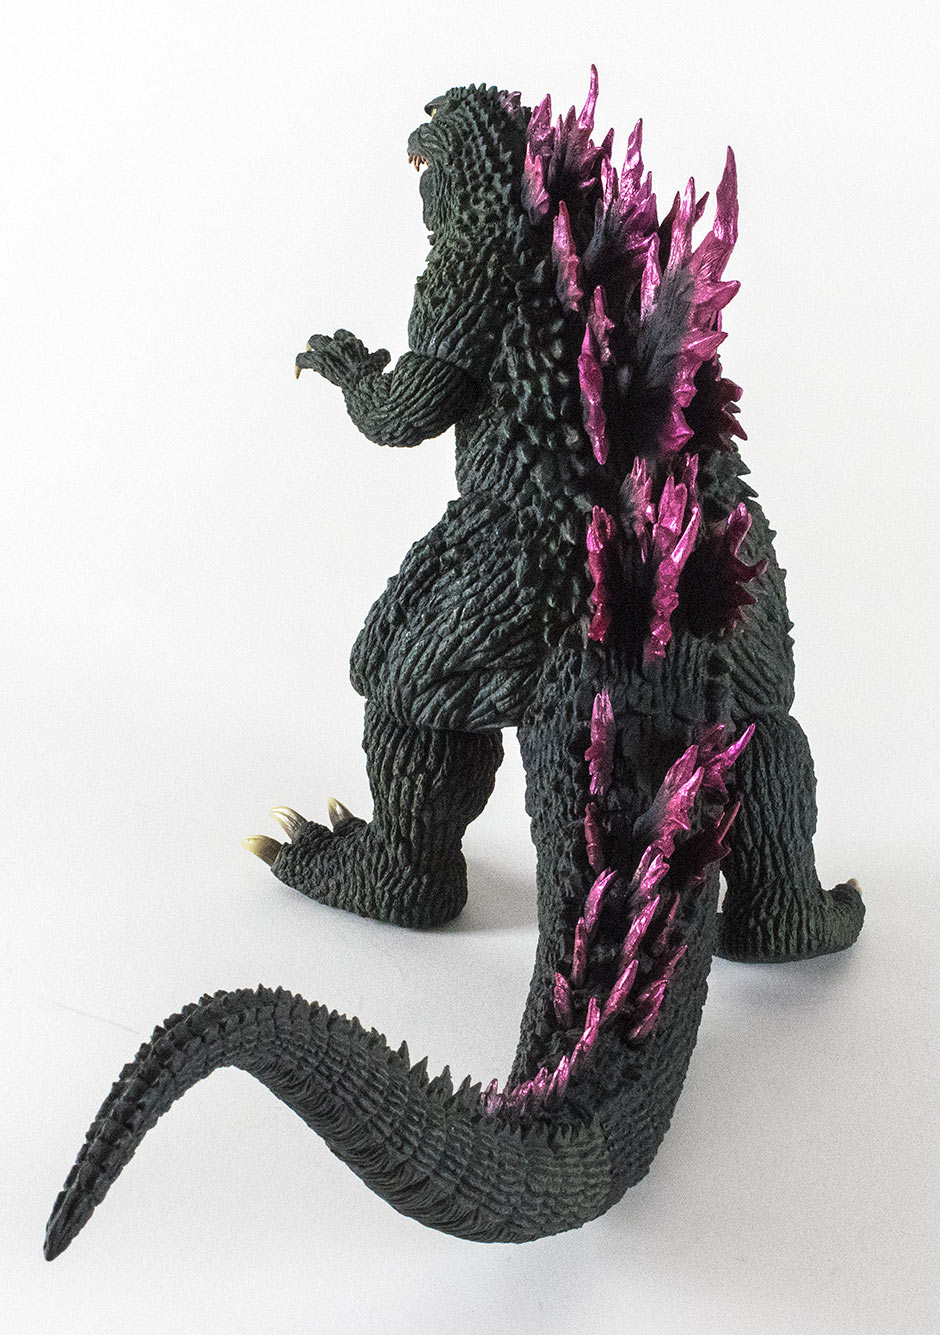 X-Plus 12in Series Godzilla 1999 Ver. 2 vinyl figure - rear view extra.